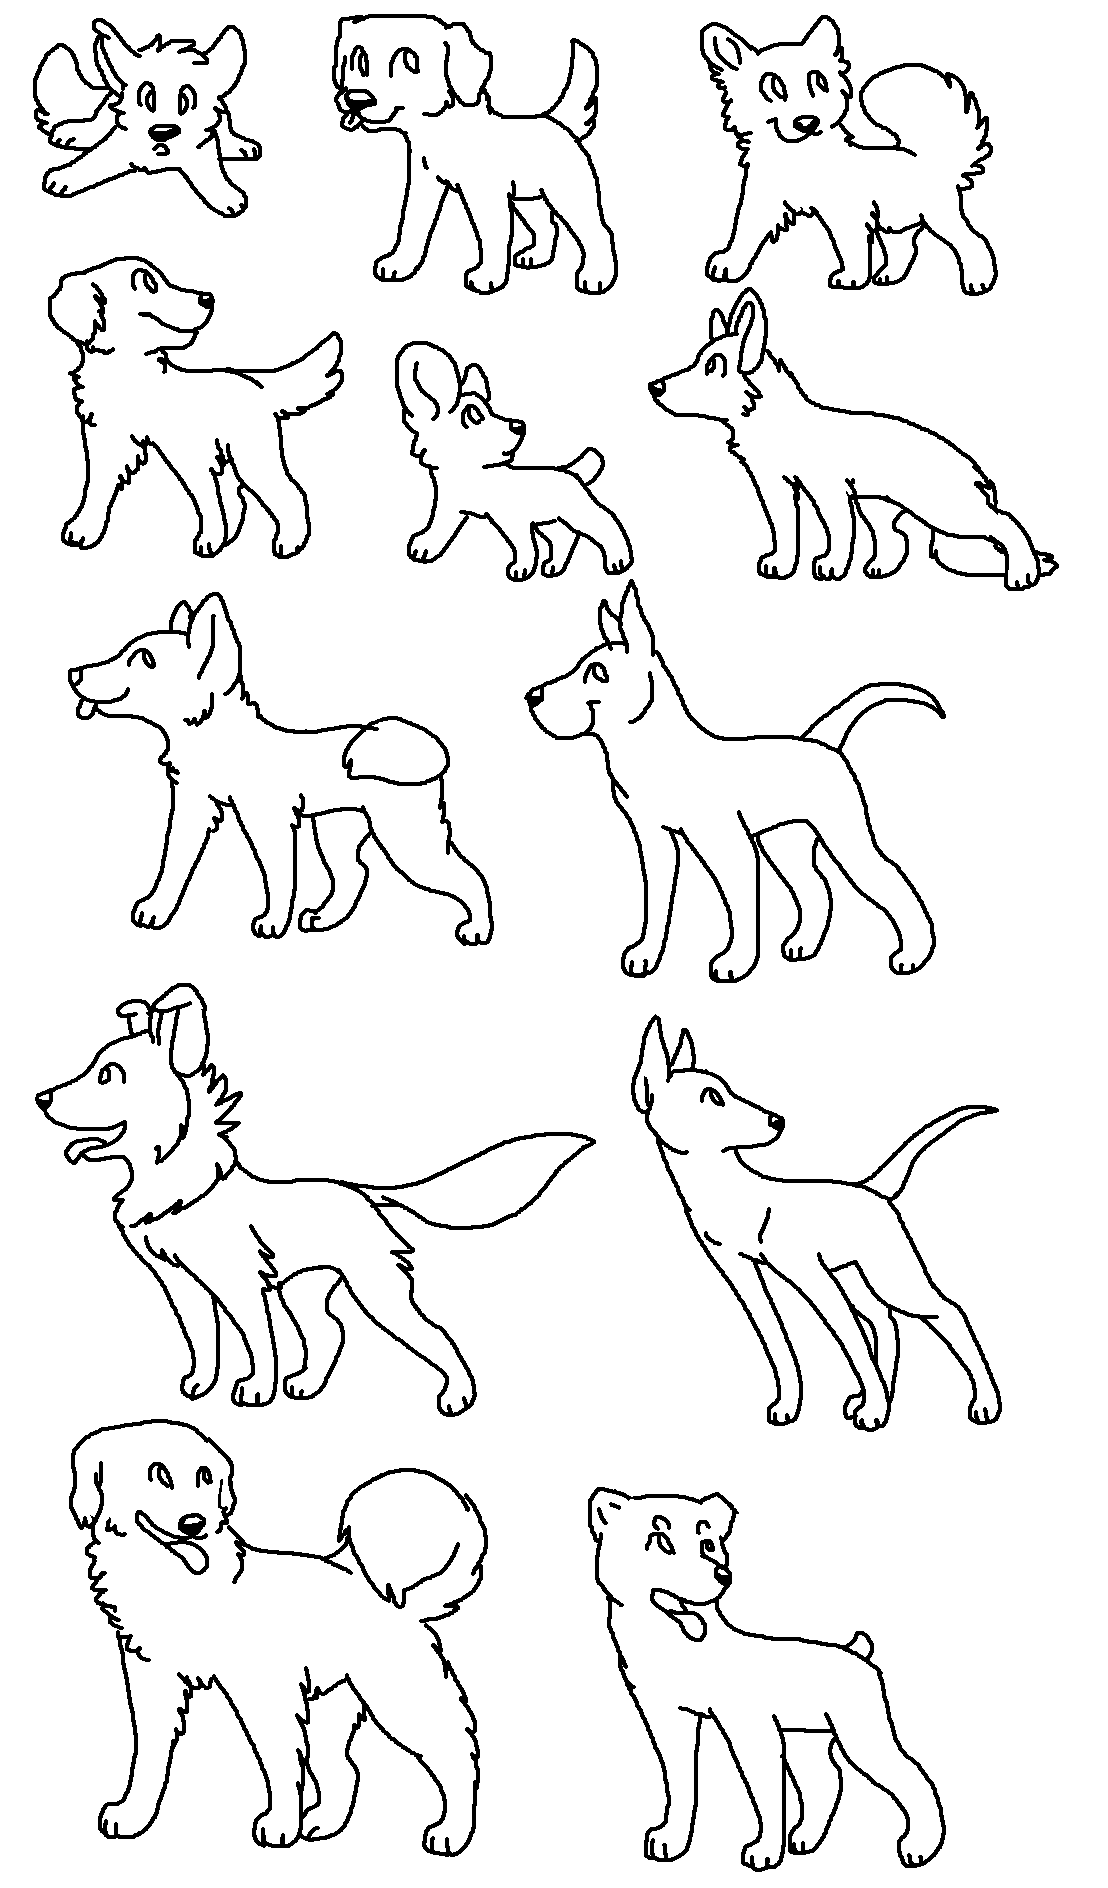 dog breeds coloring pages free ms paint dog breed batch lineart by kayadoptables on